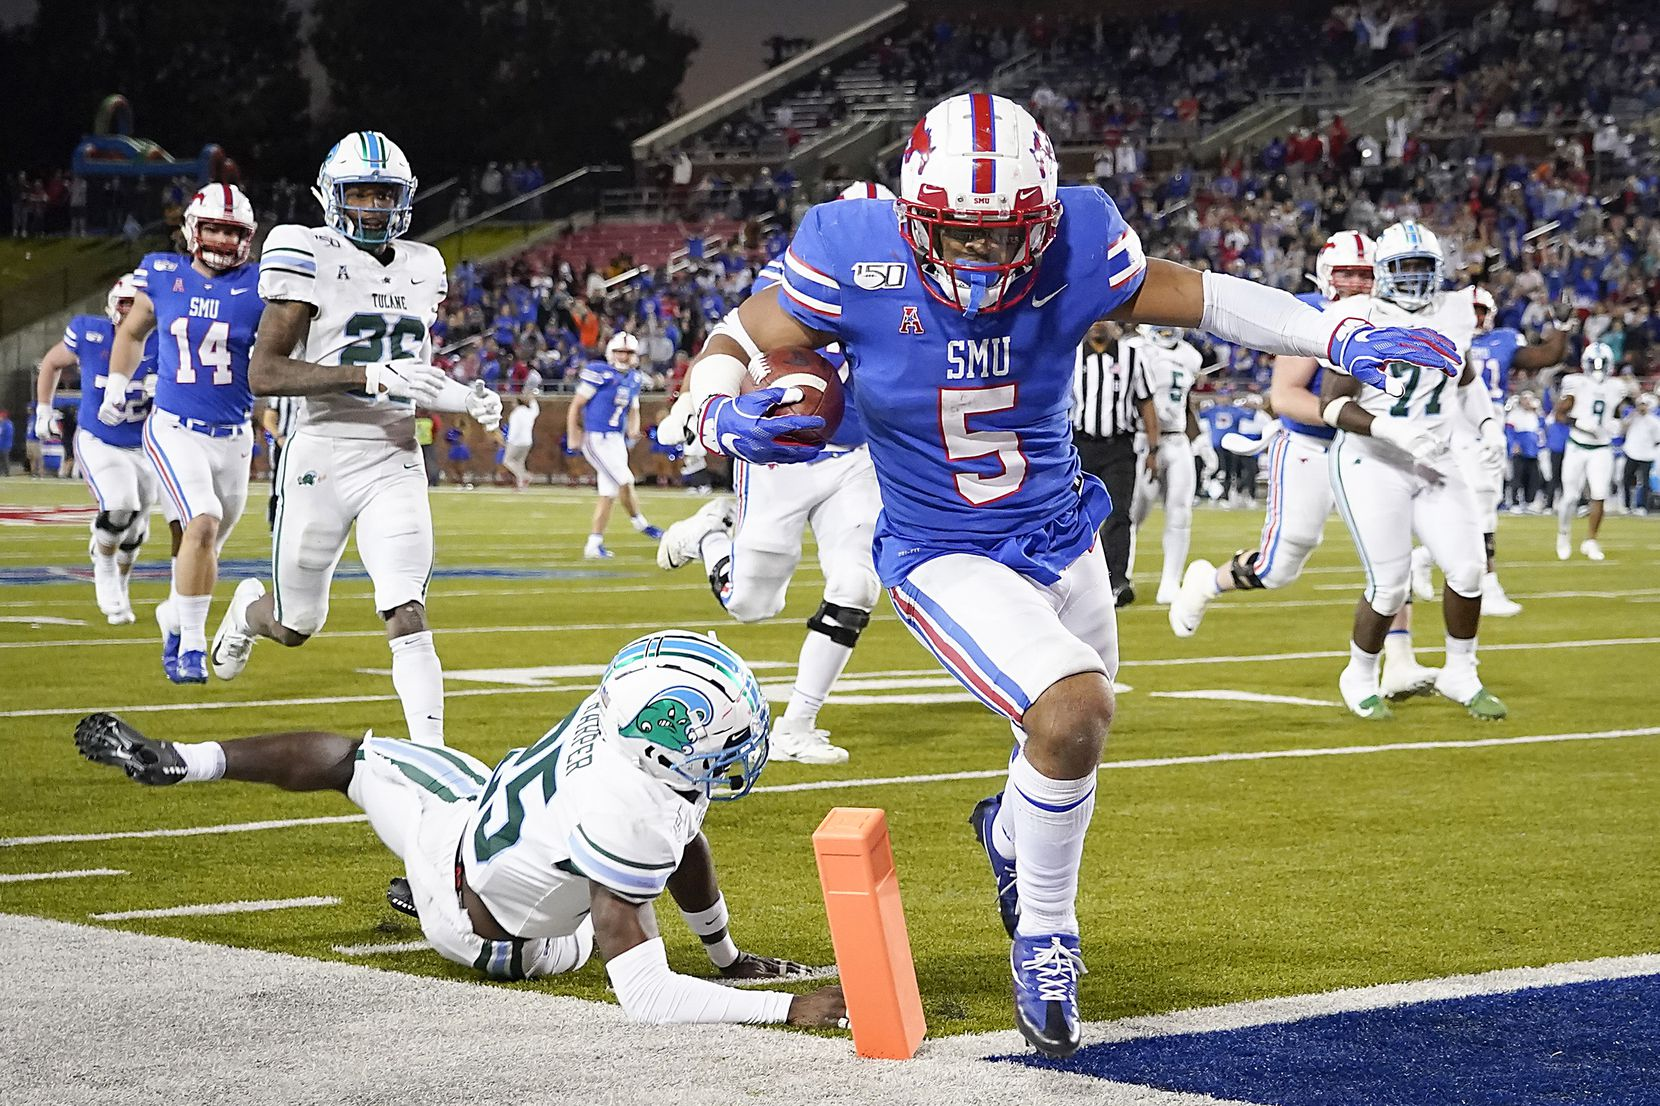 SMU running back Xavier Jones (5) scores on a 25-yard touchdown run past Tulane safety Will Harper (25) during the second half of an NCAA football game at Ford Stadium on Saturday, Nov. 30, 2019, in Dallas. The Mustangs won the game 37-20.